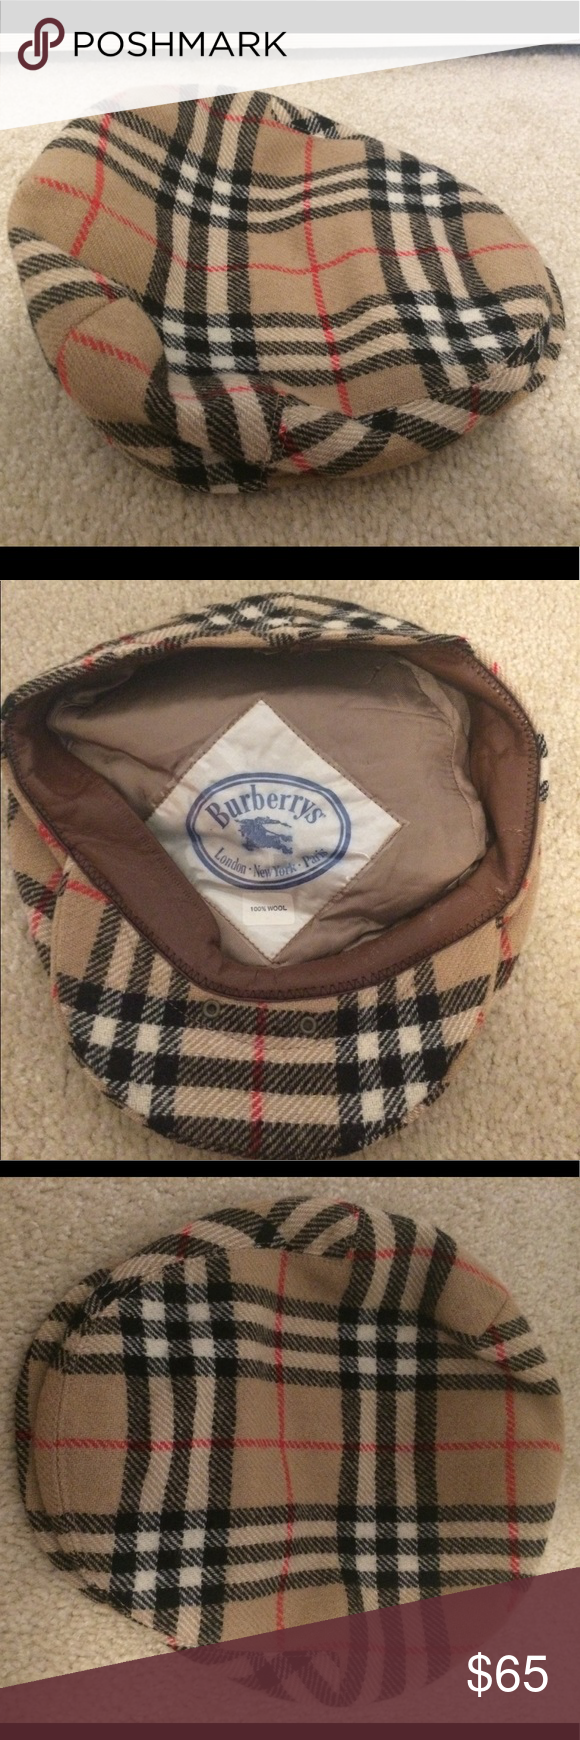 Vintage Burberry wool cabbie golf cap unisex Vintage Burberry cabbie wool  newsboy golf cap. Unisex. Sz 7 5 8. Inside tag reads sz 61 with Burberry  tag. cbe793bd6b93